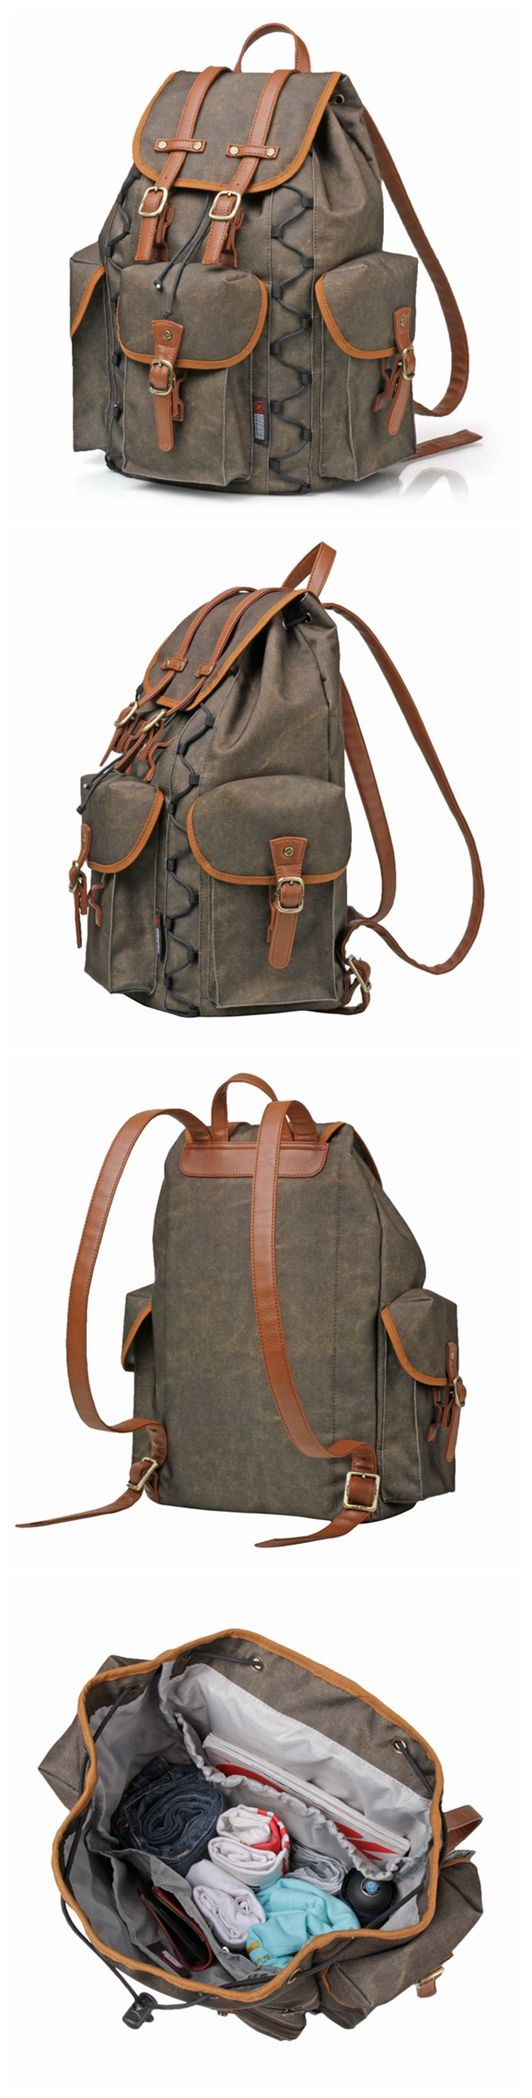 Casual Waterproof Canvas Travel Backpack Hiking Rucksack Outdoor Bag School Backpack Cool Backpack Men's Backpack FB12 -------------------------------- Style: Selection of the finest oxford cloth, adv